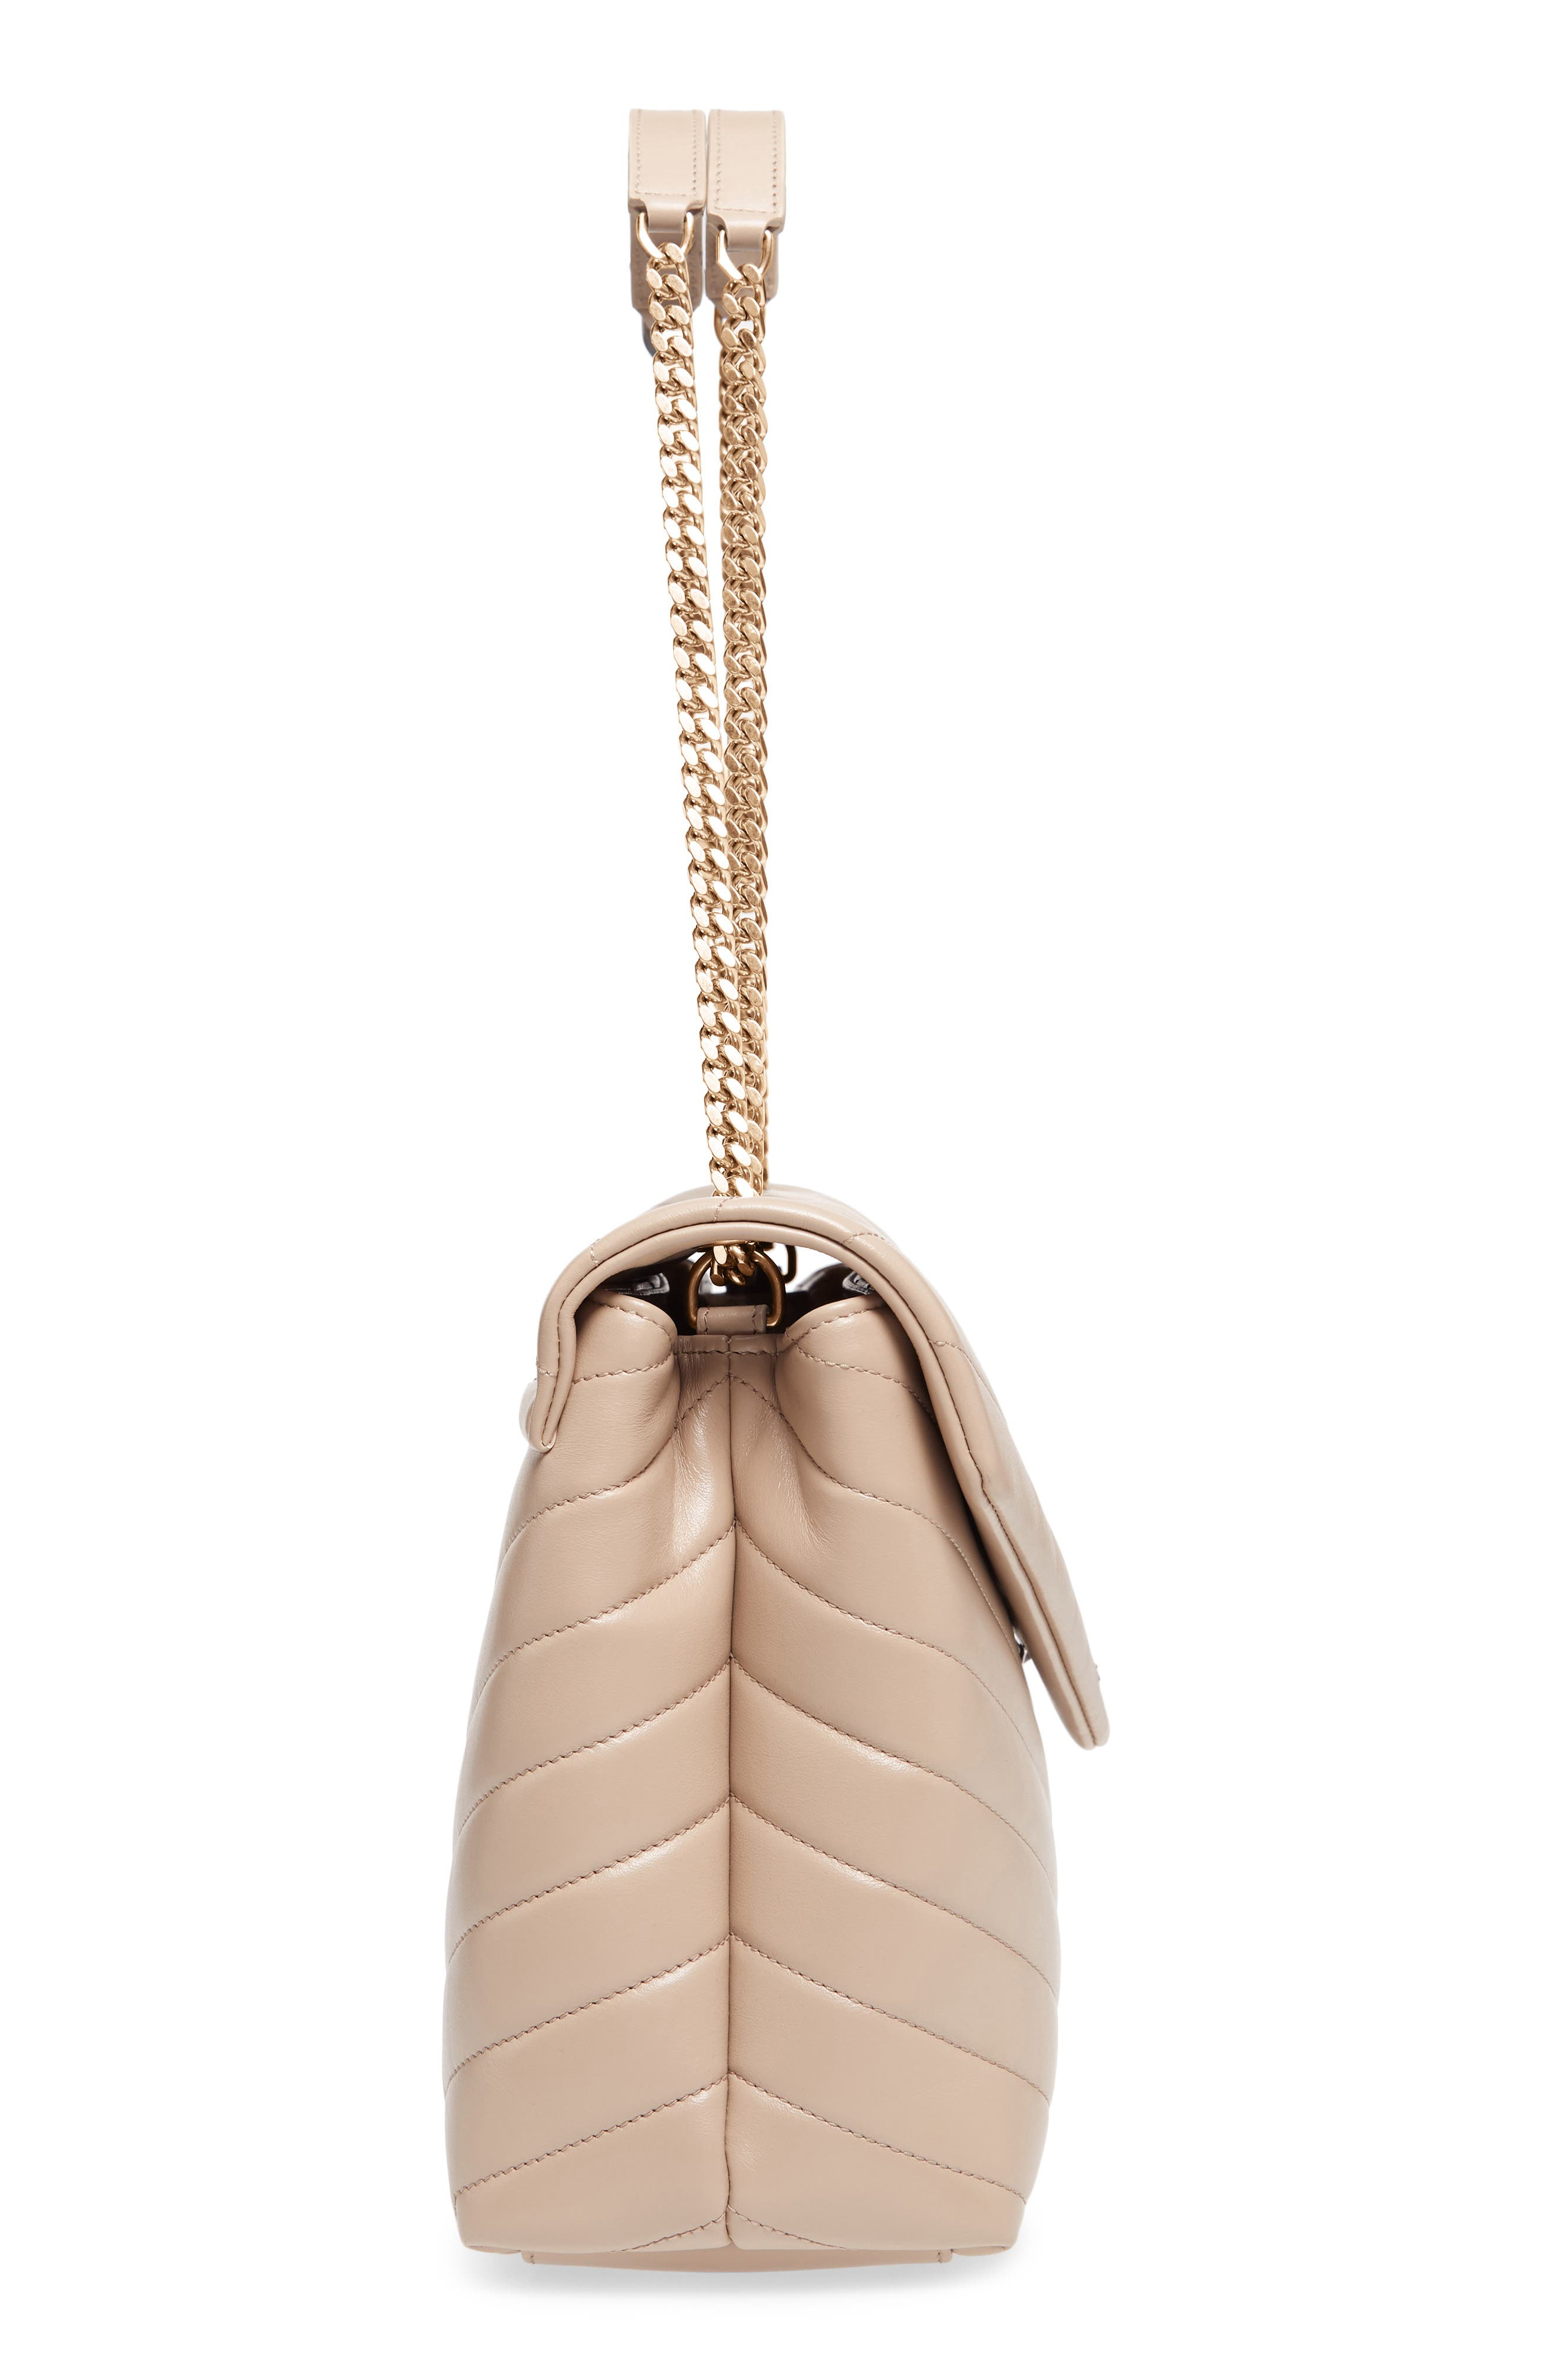 SAINT LAURENT, Medium Loulou Matelassé Calfskin Leather Shoulder Bag, Alternate thumbnail 5, color, LIGHT NATURAL